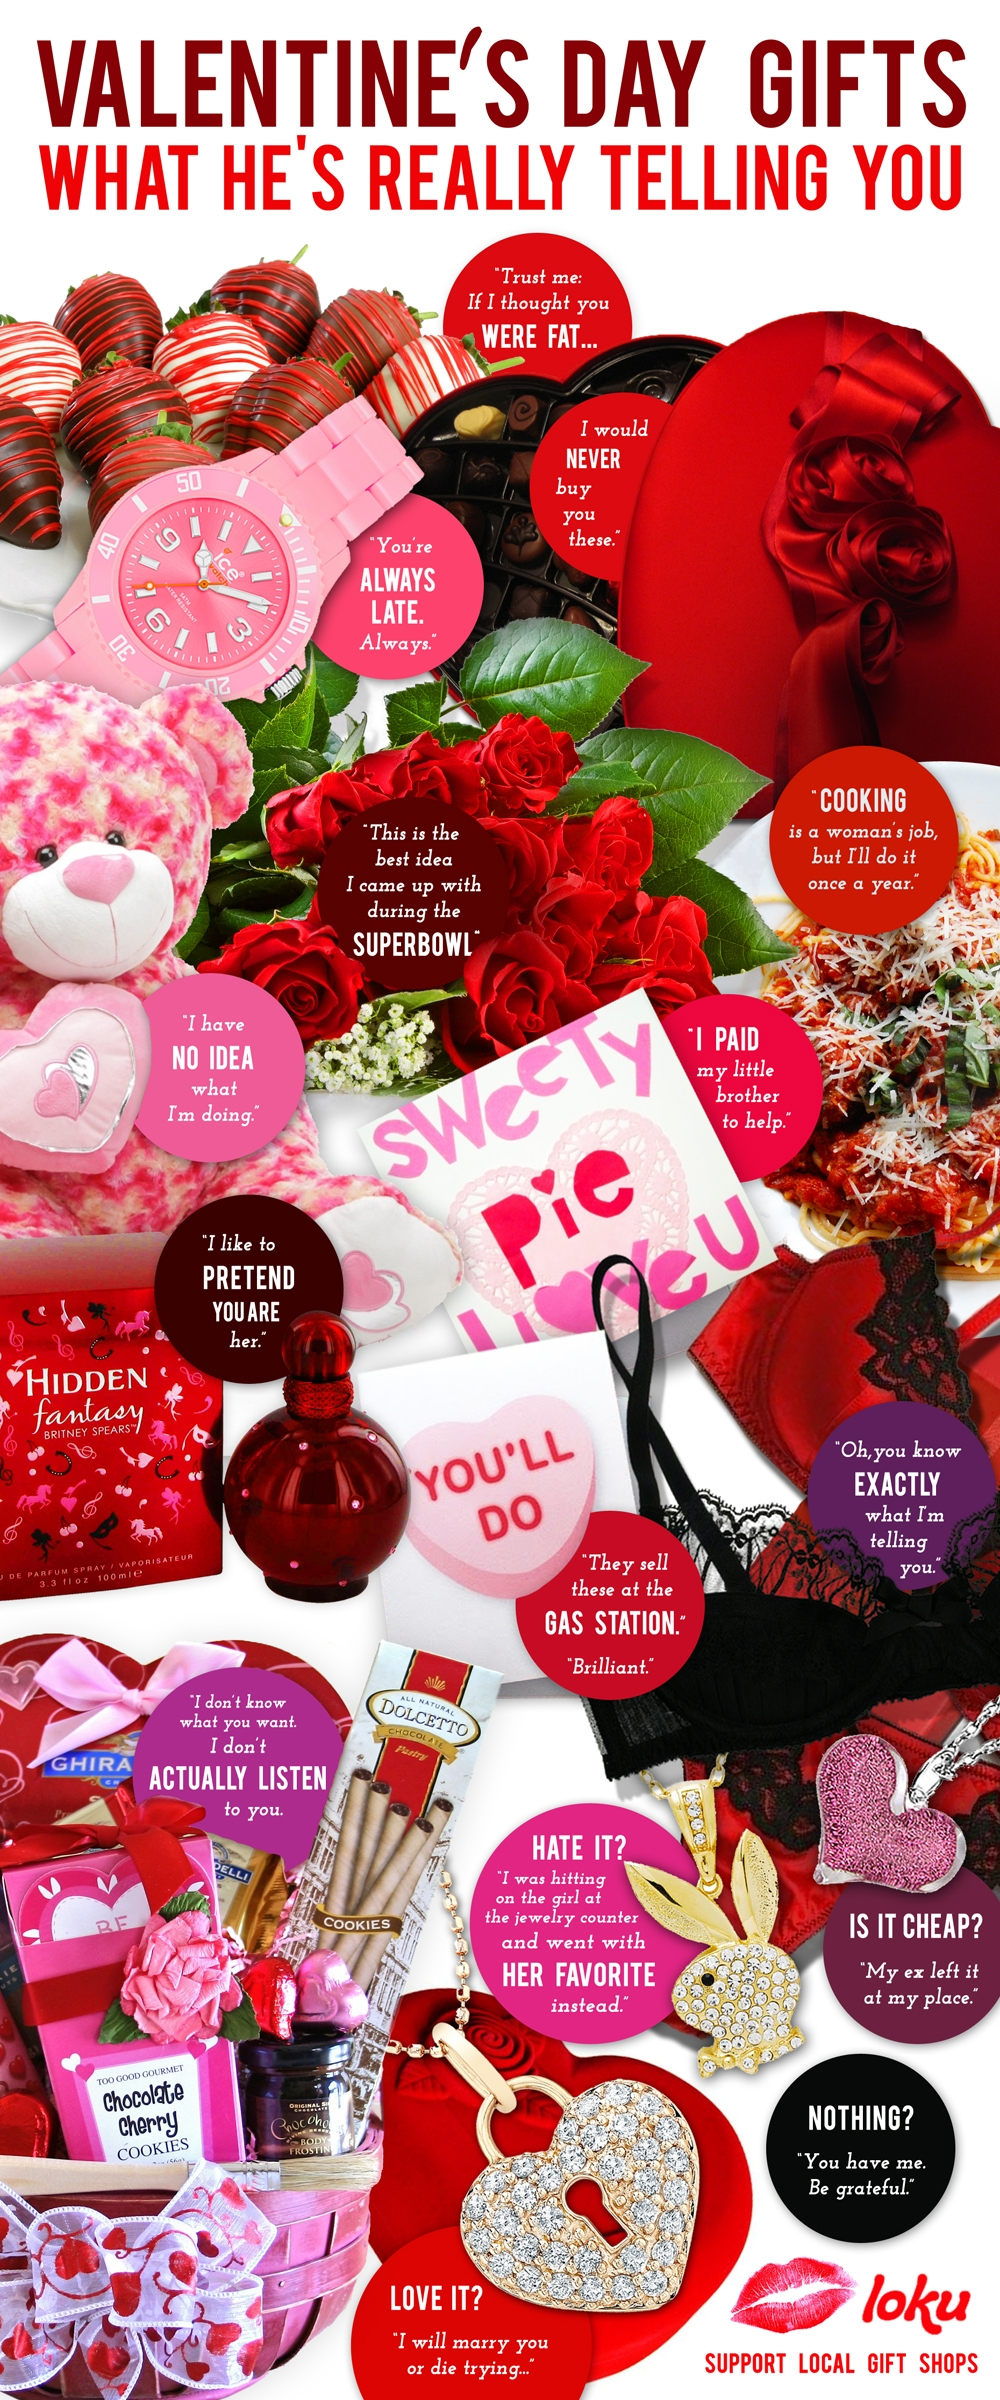 valentines-gifts--what-hes-really-telling-you